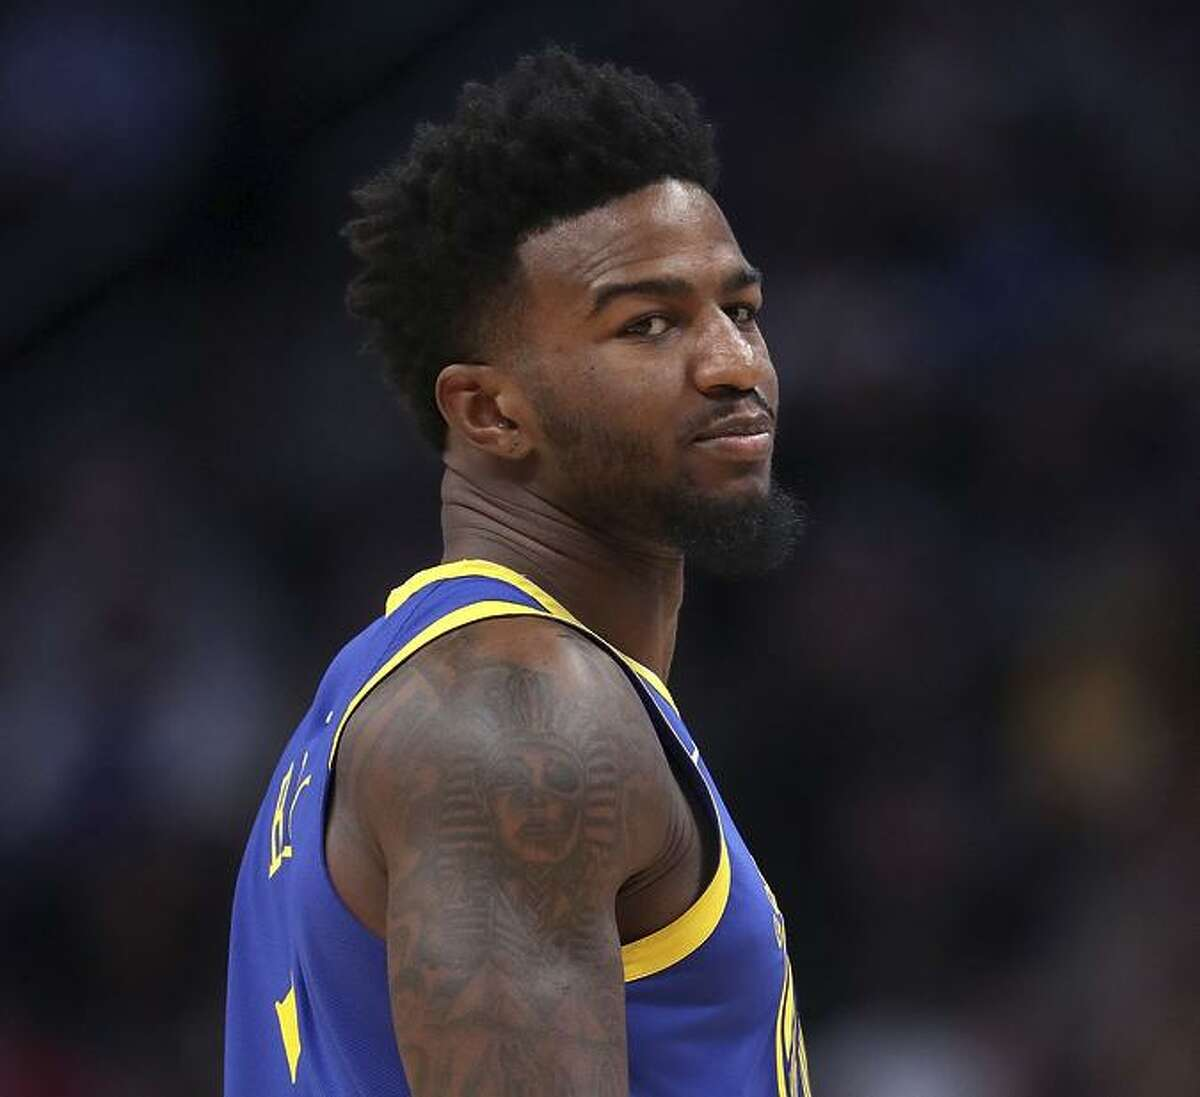 Jordan Bell #2 of the Golden State Warriors plays the Denver Nuggets at the Pepsi Center on January 15, 2019 in Denver, Colorado.